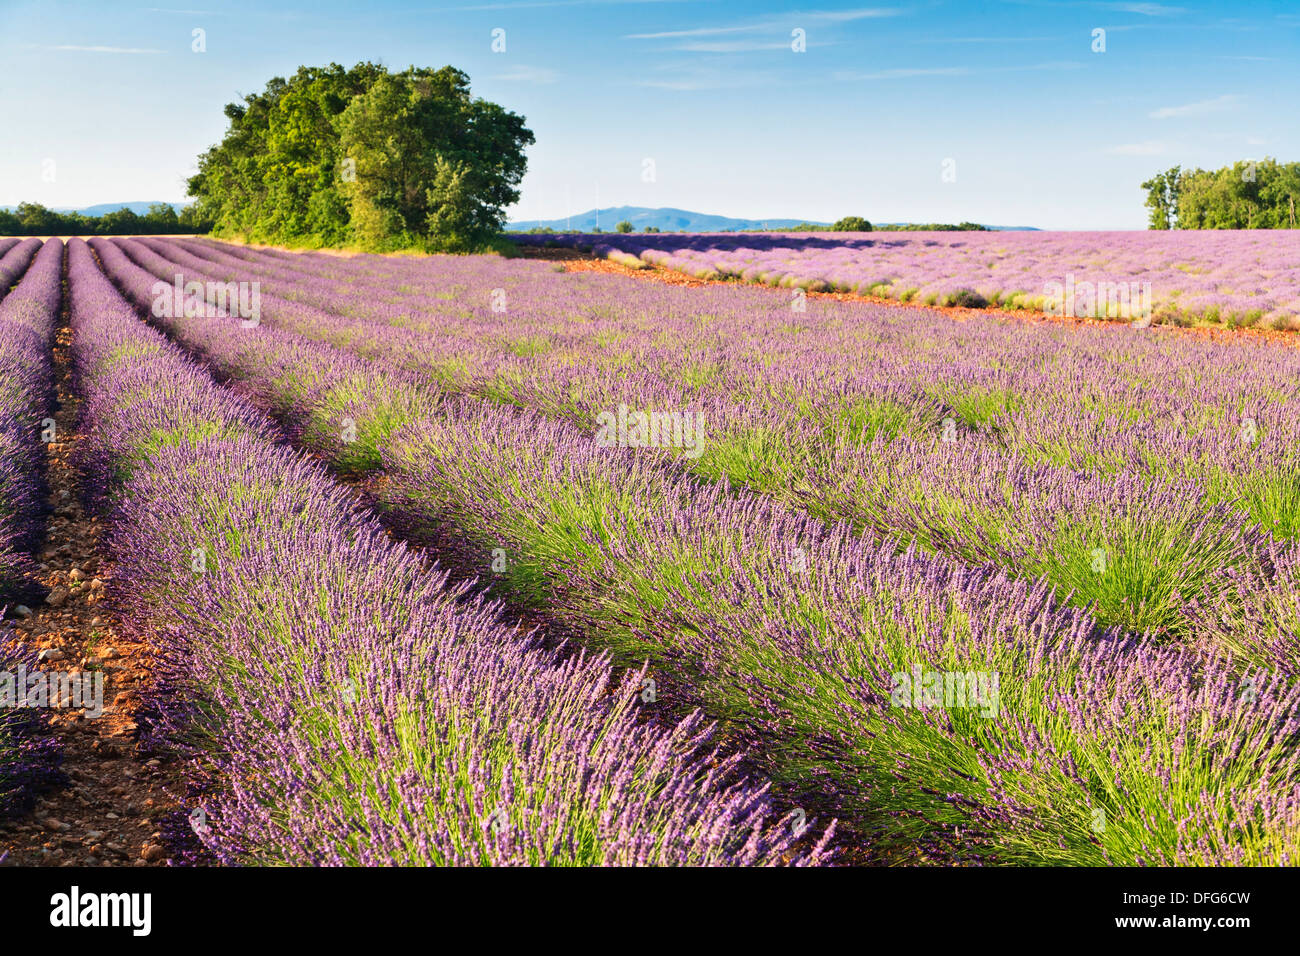 Lavender field in Provence, France, Europe - Stock Image